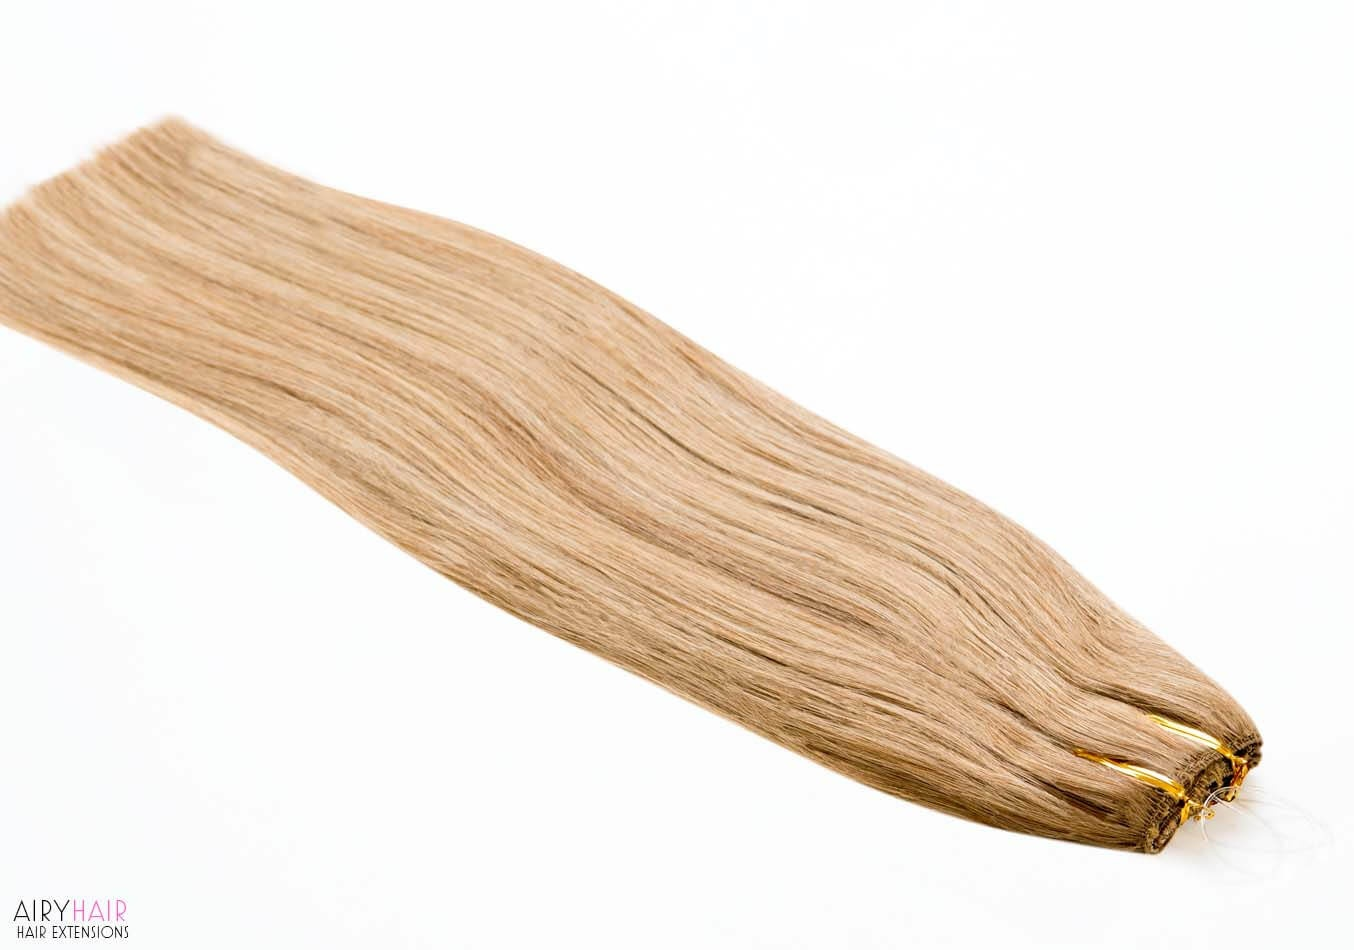 Buy One Piece Body Wave Hair Extensions Airyhair